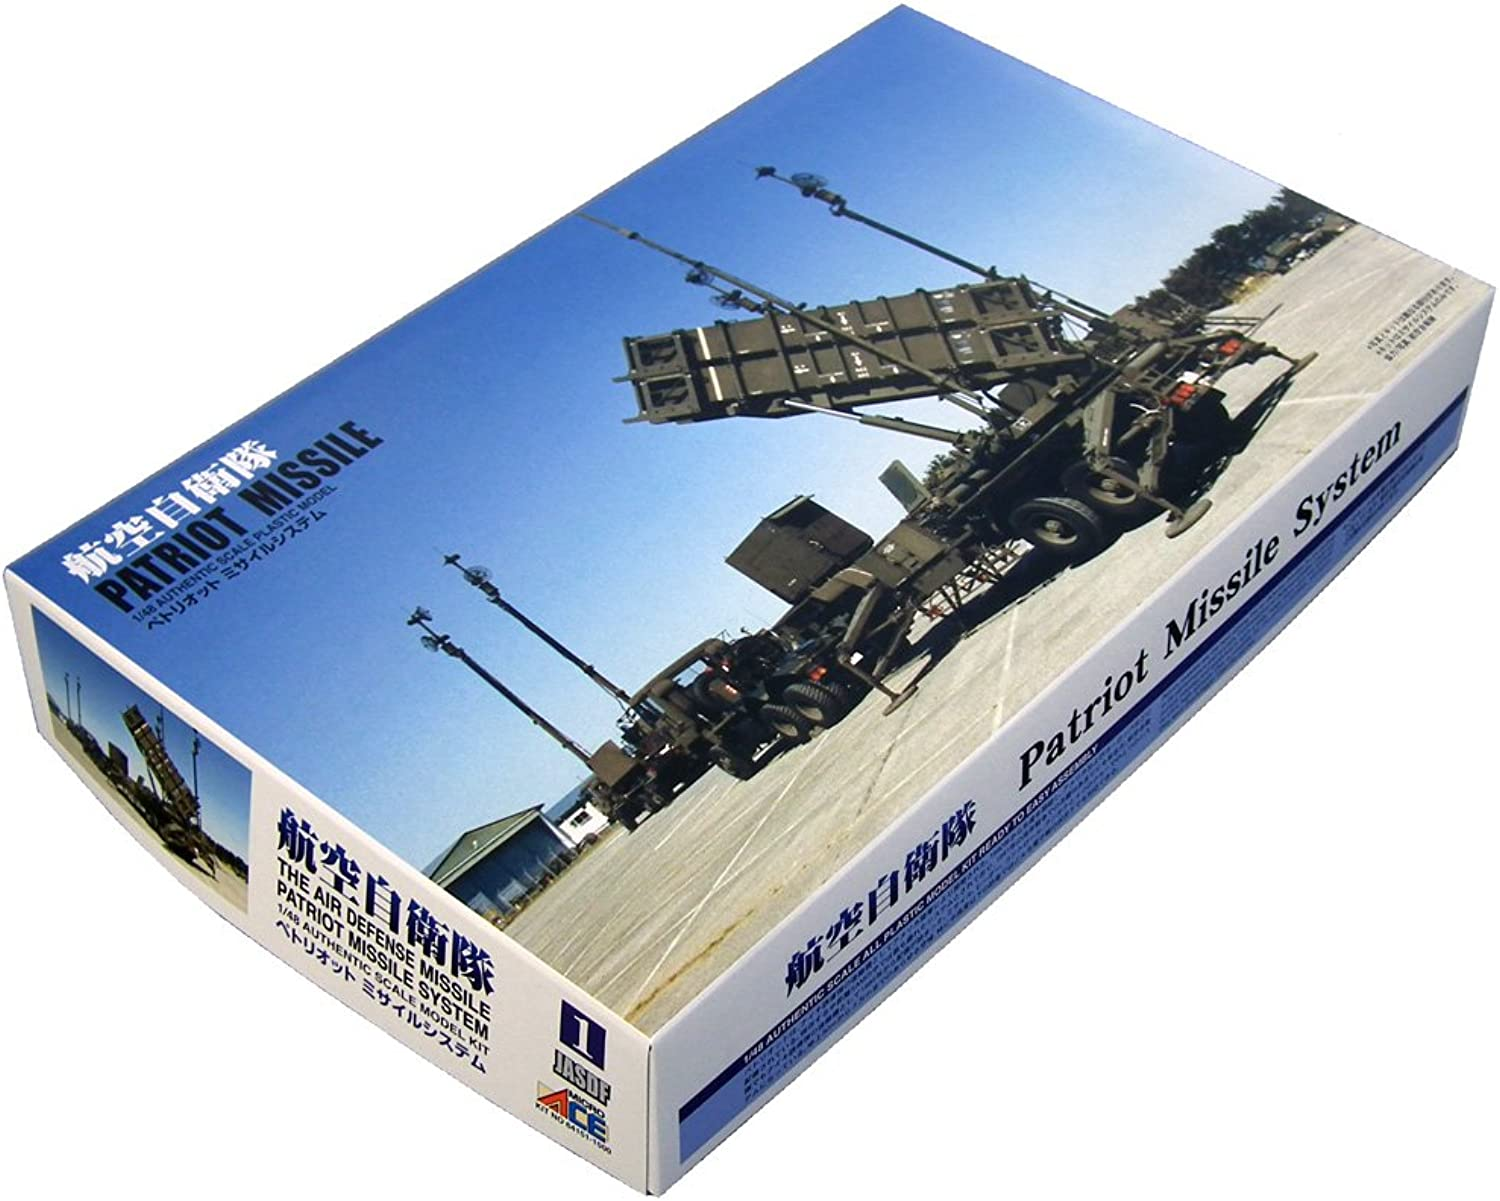 Micro Ace 1 48 Patriot system series Air Self Defense Force missile system Micro ace (japan import)